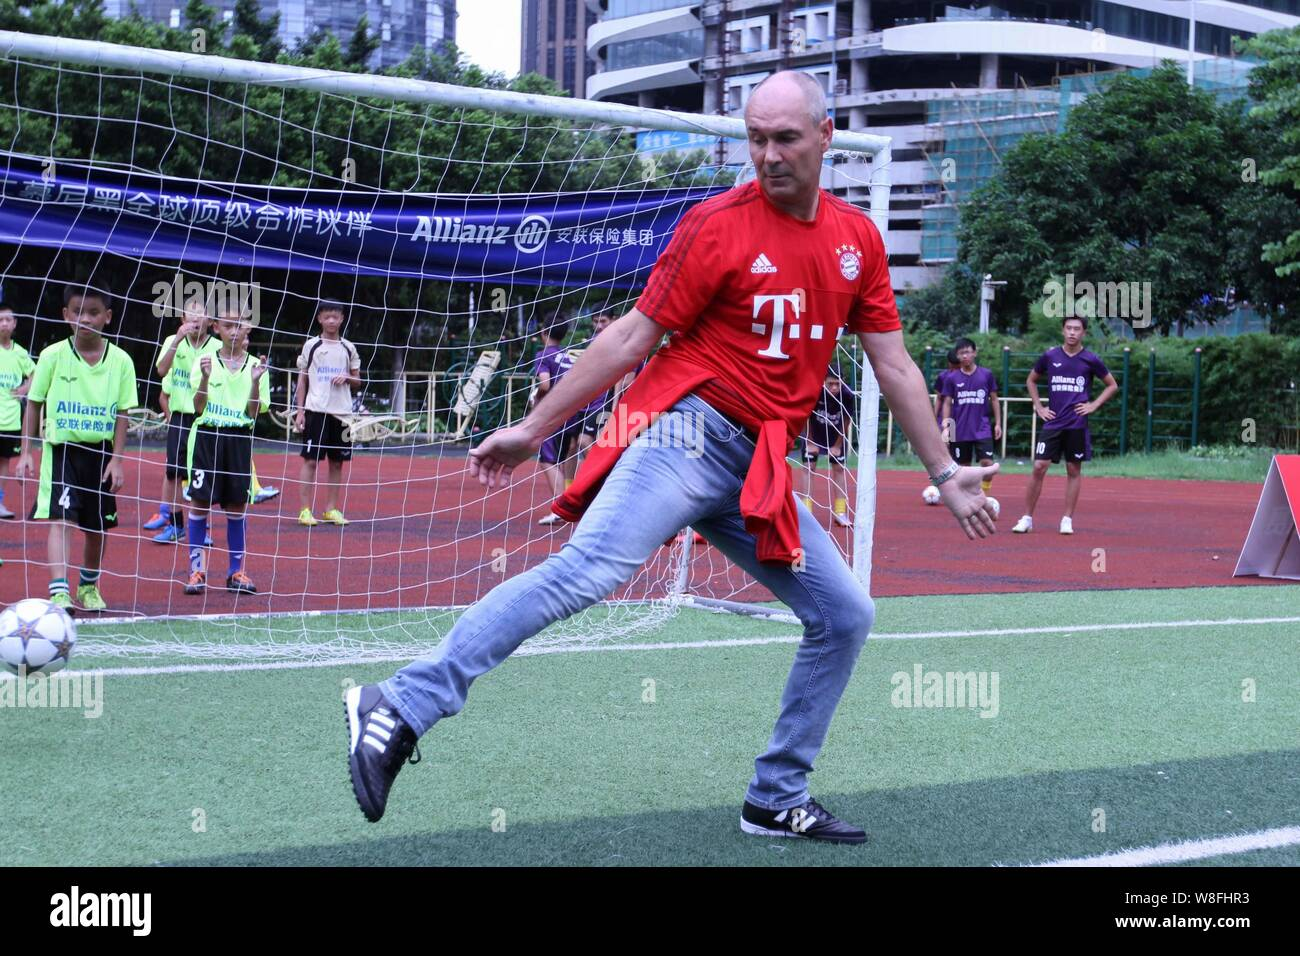 Former German soccer star Raimond Aumann shows his football skill during a fan meeting event in Guangzhou city, south China's Guangdong province, 23 J Stock Photo